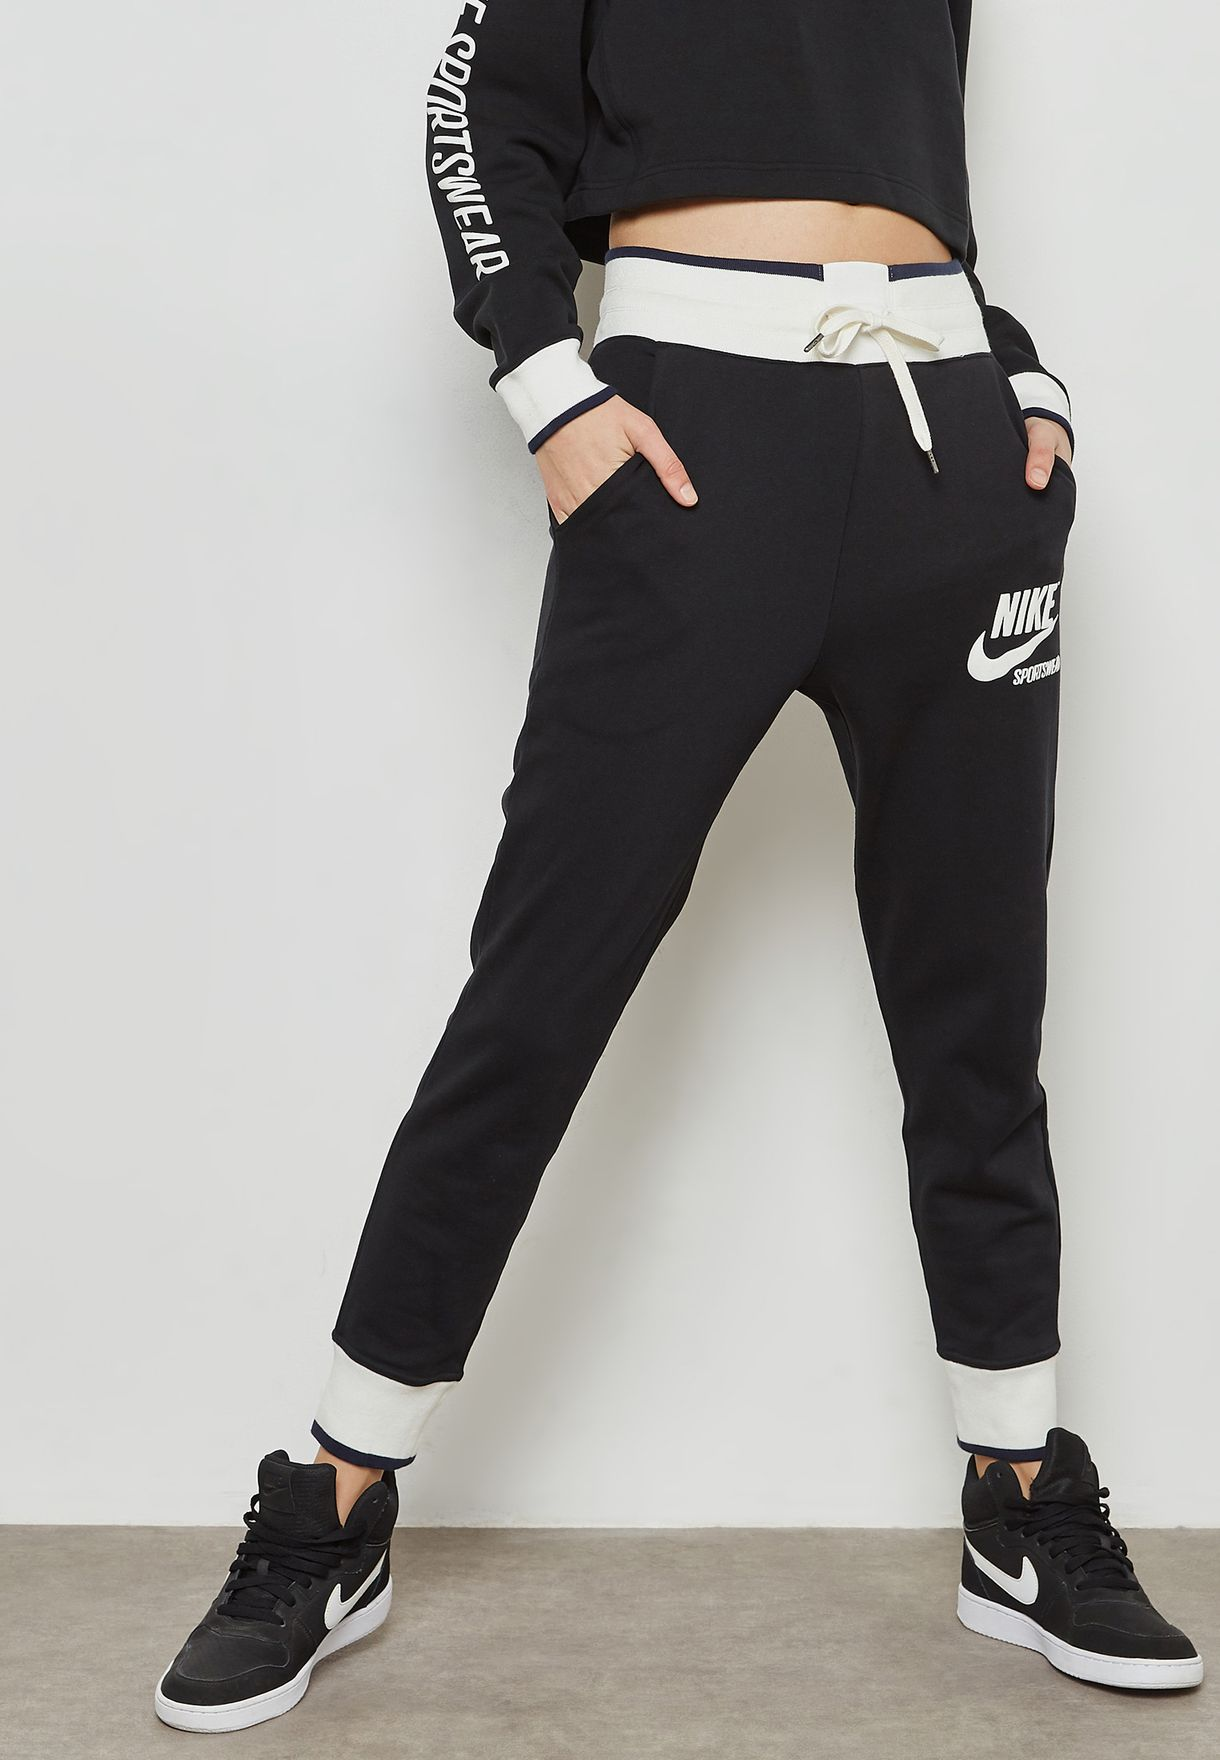 ac531ee05 Shop Nike black Archive Sweatpants 909726-010 for Women in Saudi ...